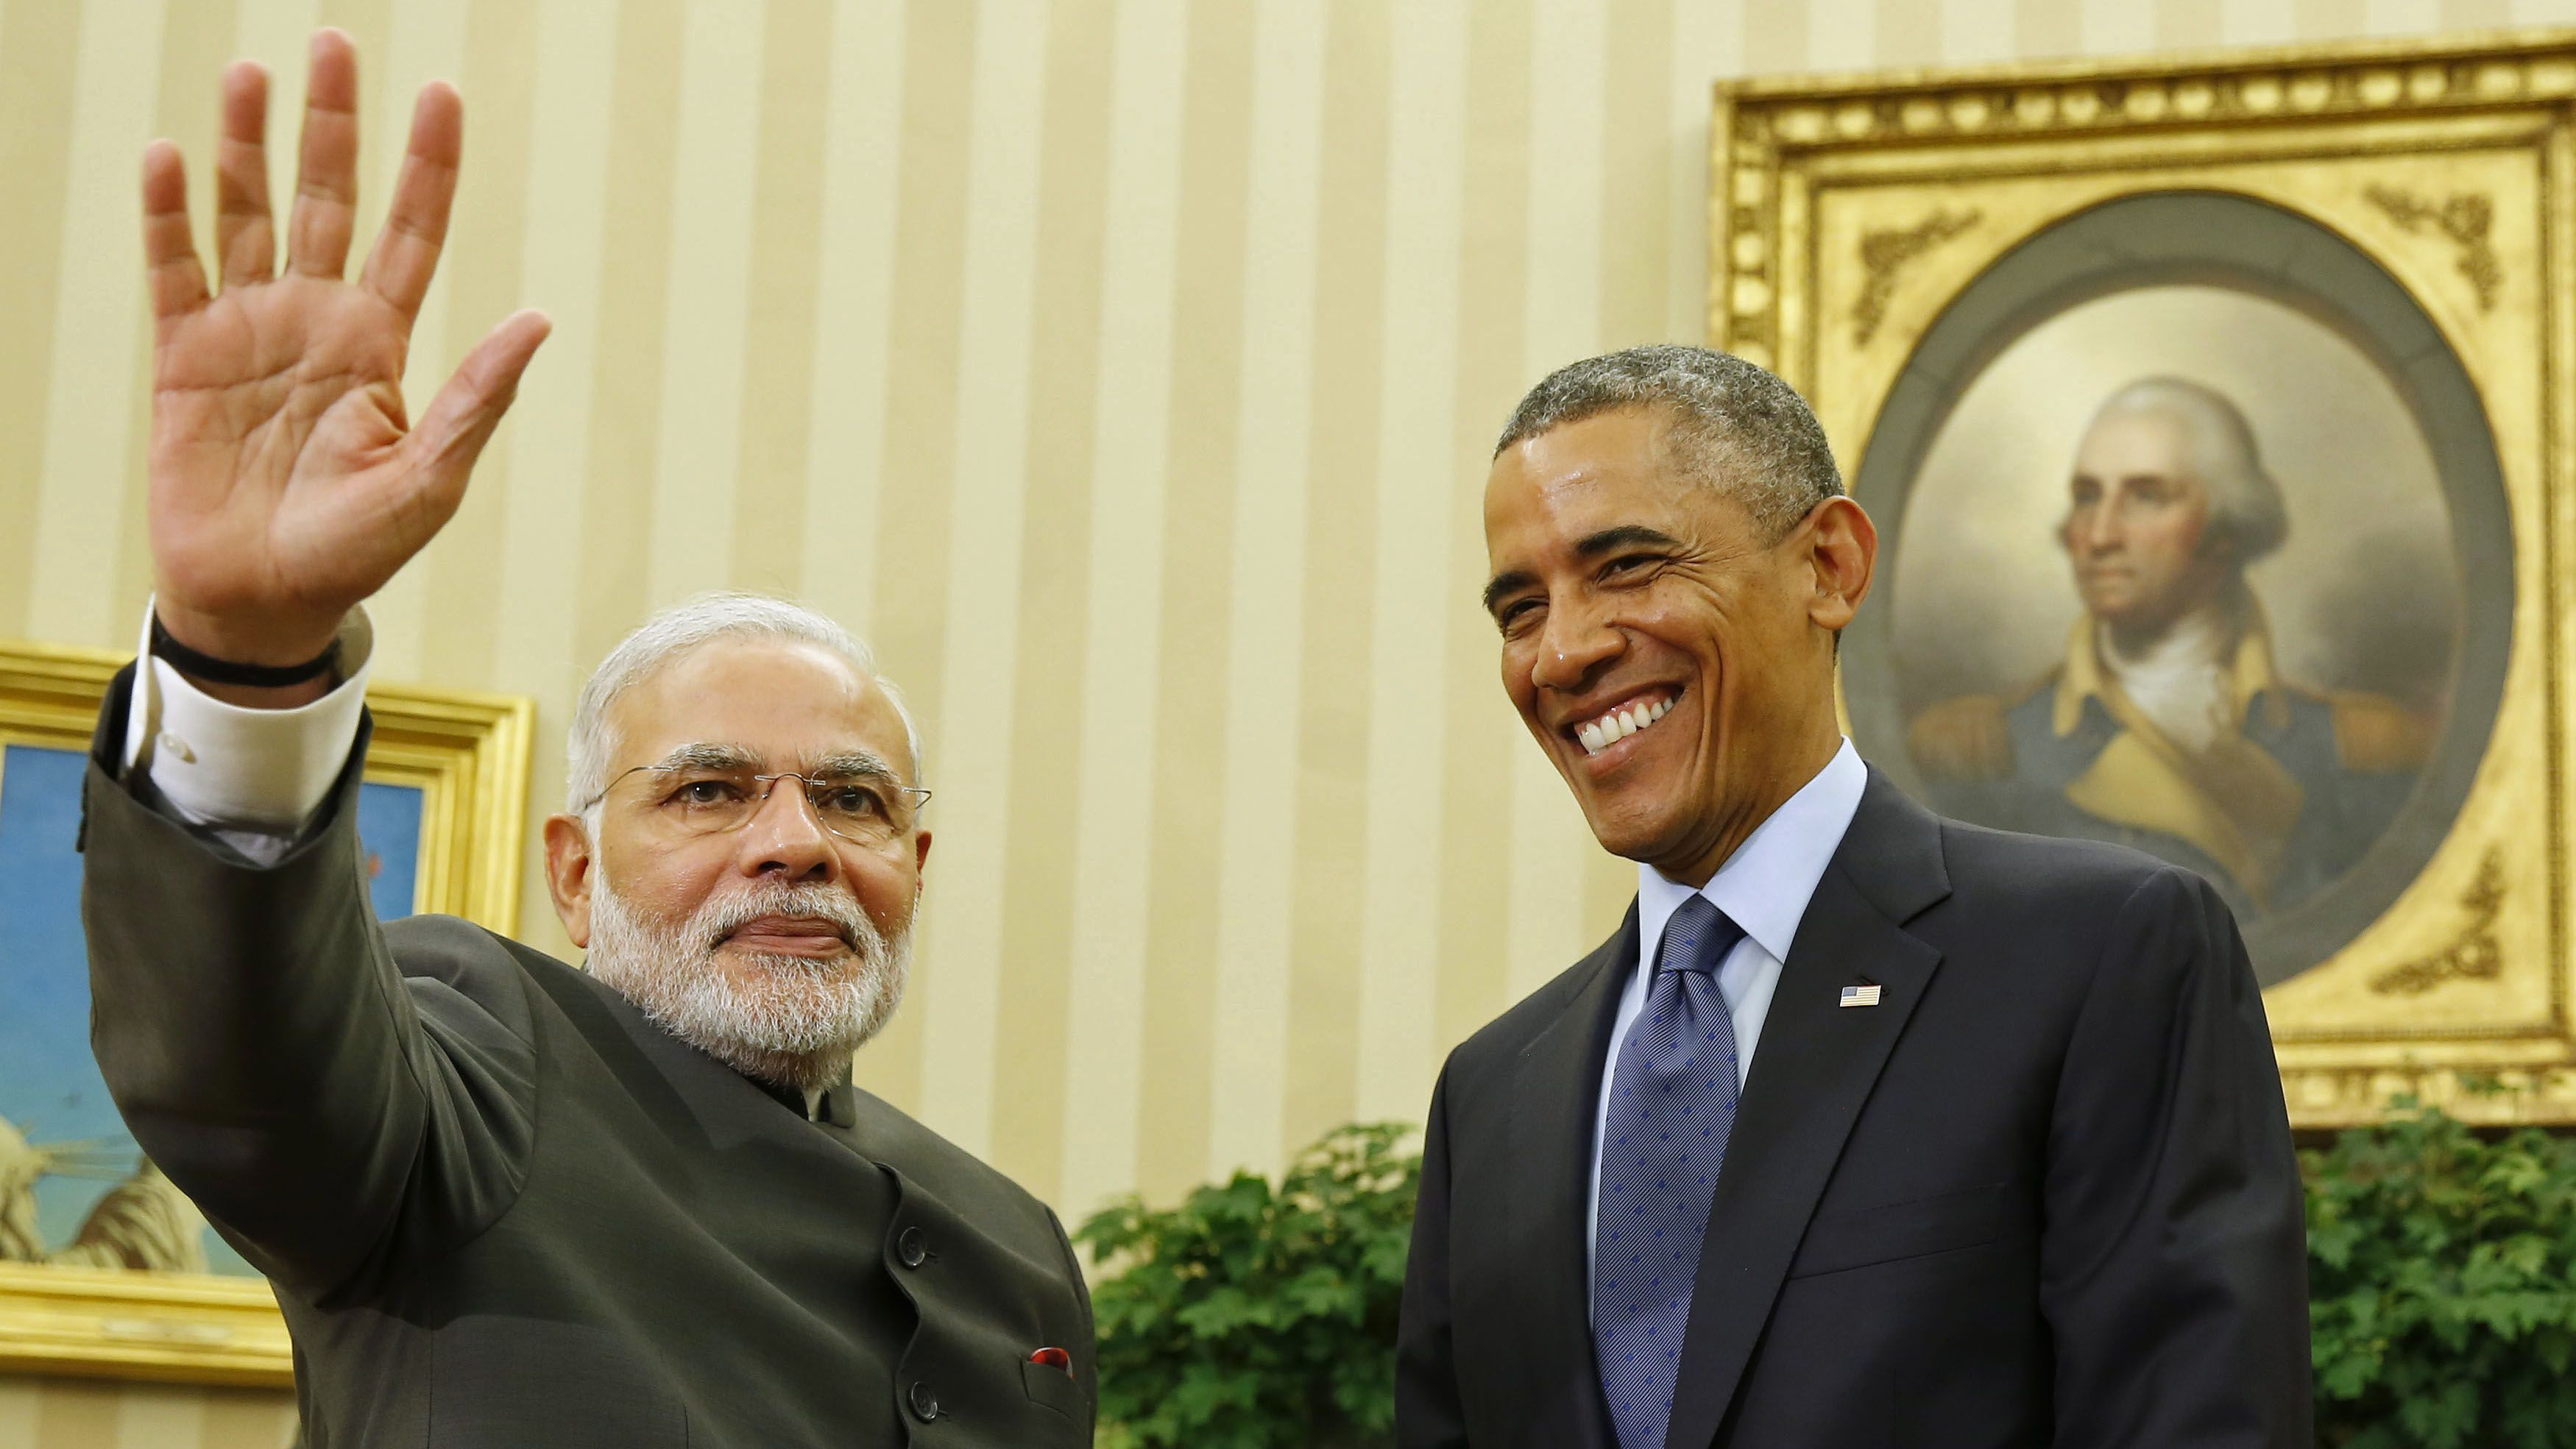 U.S. President Barack Obama smiles as he hosts a meeting with India's Prime Minister Narendra Modi in the Oval Office of the White House in Washington September 30, 2014. REUTERS/Larry Downing